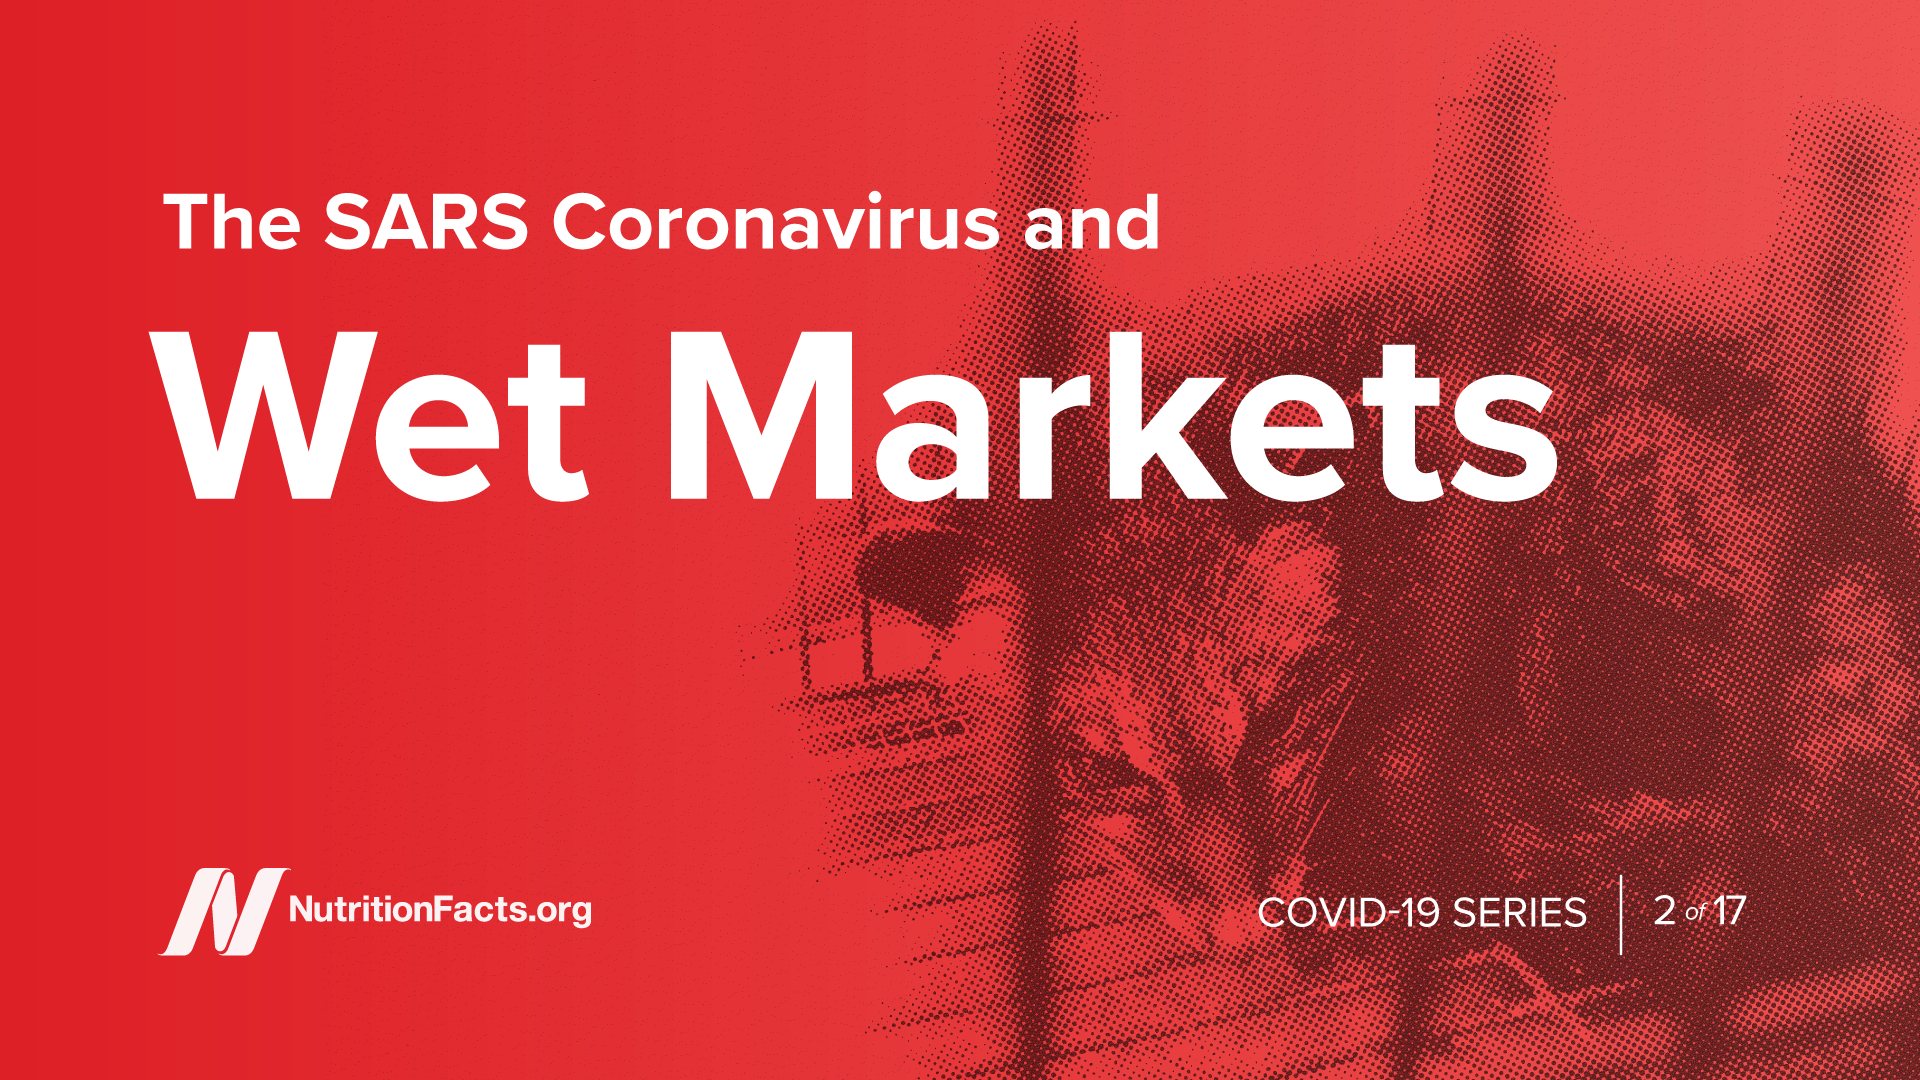 The SARS Coronavirus and Wet Markets